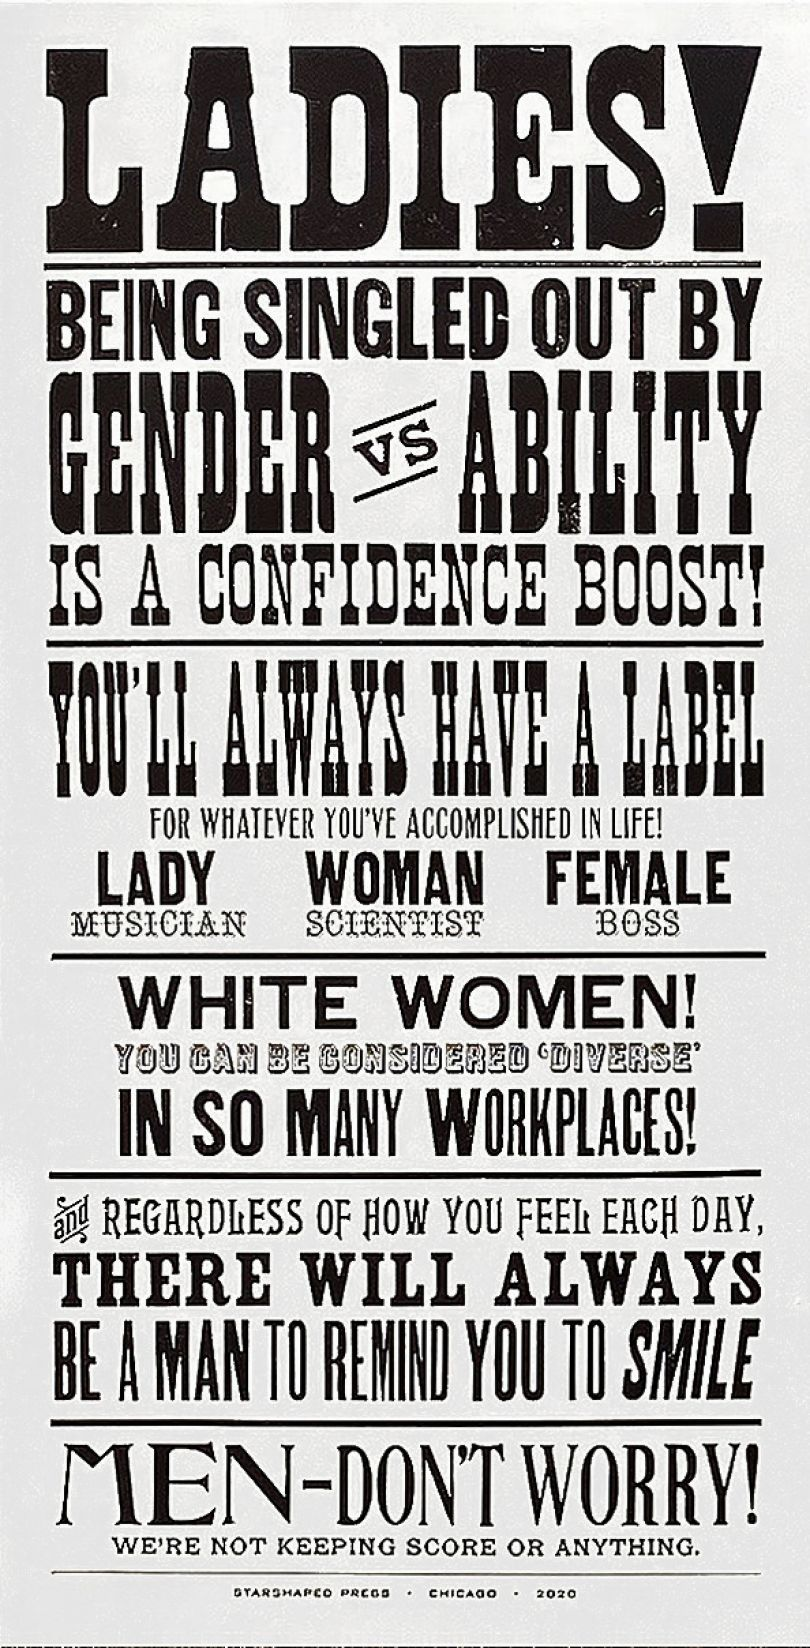 Ladies! Being Singled Out by Gender vs. Ability is a Confidence Boost! © Jennifer Farrell, Starshaped Press